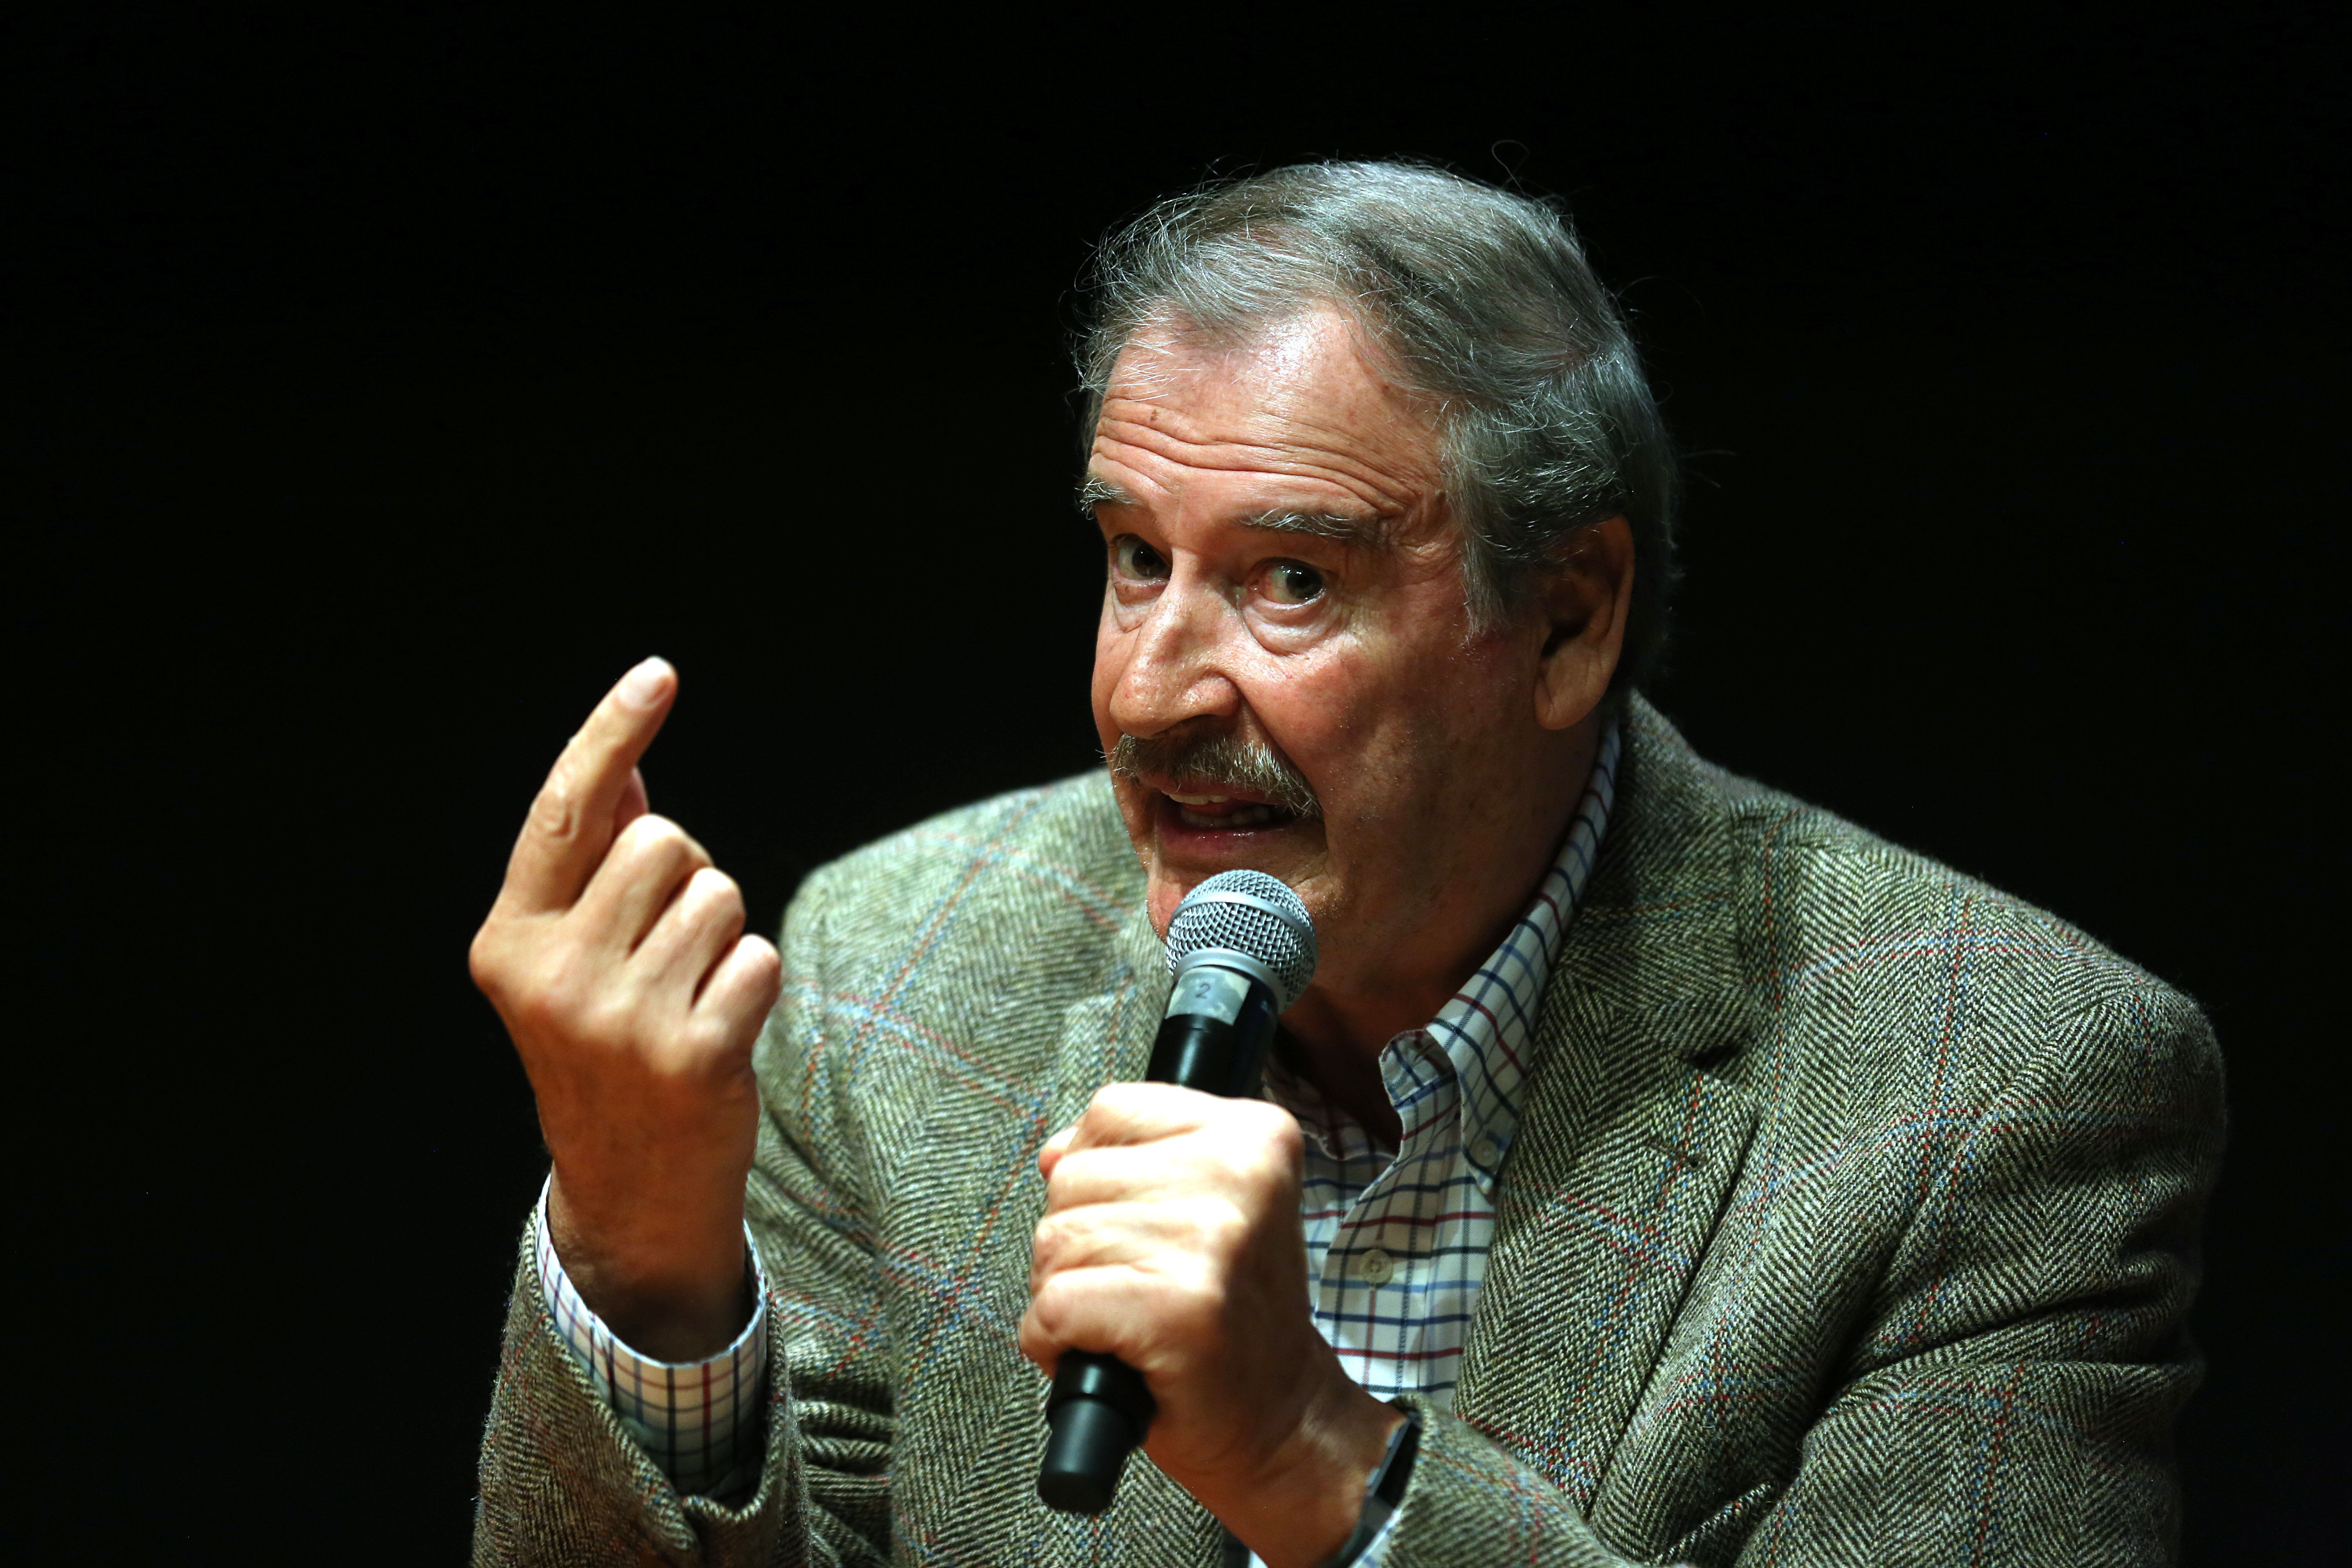 DALLAS, TEXAS - FEBRUARY 19: Former President of Mexico Vicente Fox gestures during a press conference to present his book 'Let's Move On: Beyond Fear & False Prophets' at University of Texas on February 19, 2018 in Dallas, Texas. (Photo by Omar Vega/Getty Images)